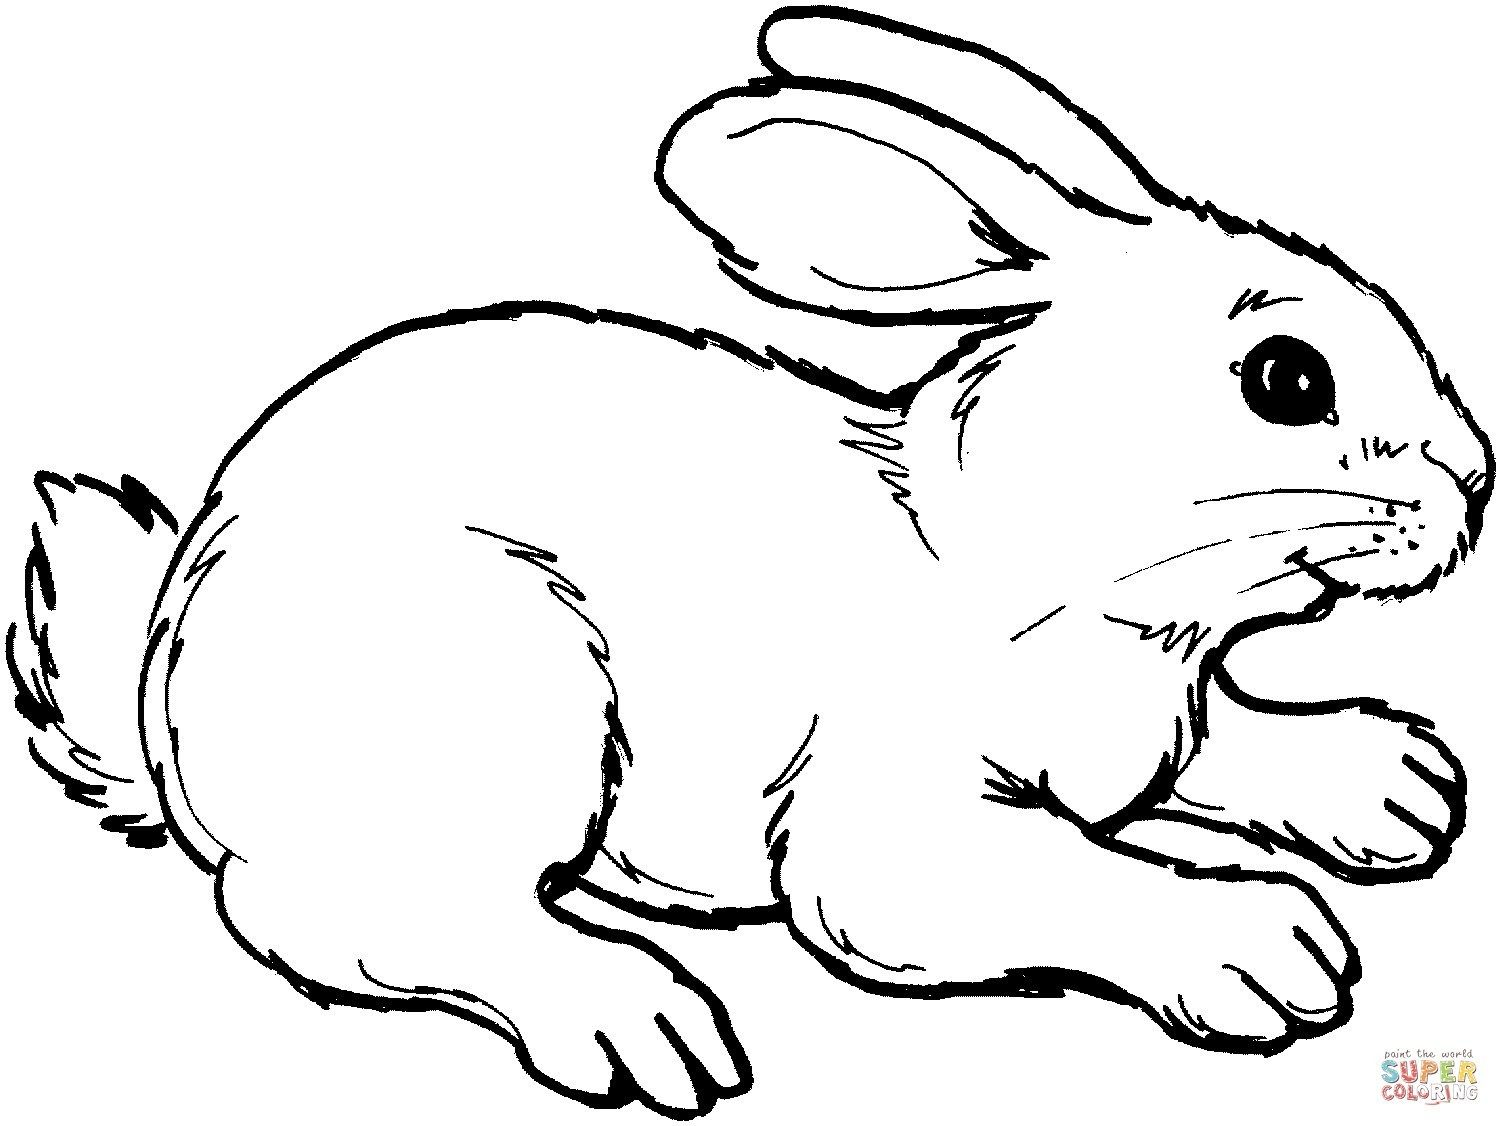 22 Beautiful Image Of Rabbit Coloring Pages Davemelillo Com Bunny Coloring Pages Farm Animal Coloring Pages Animal Coloring Pages